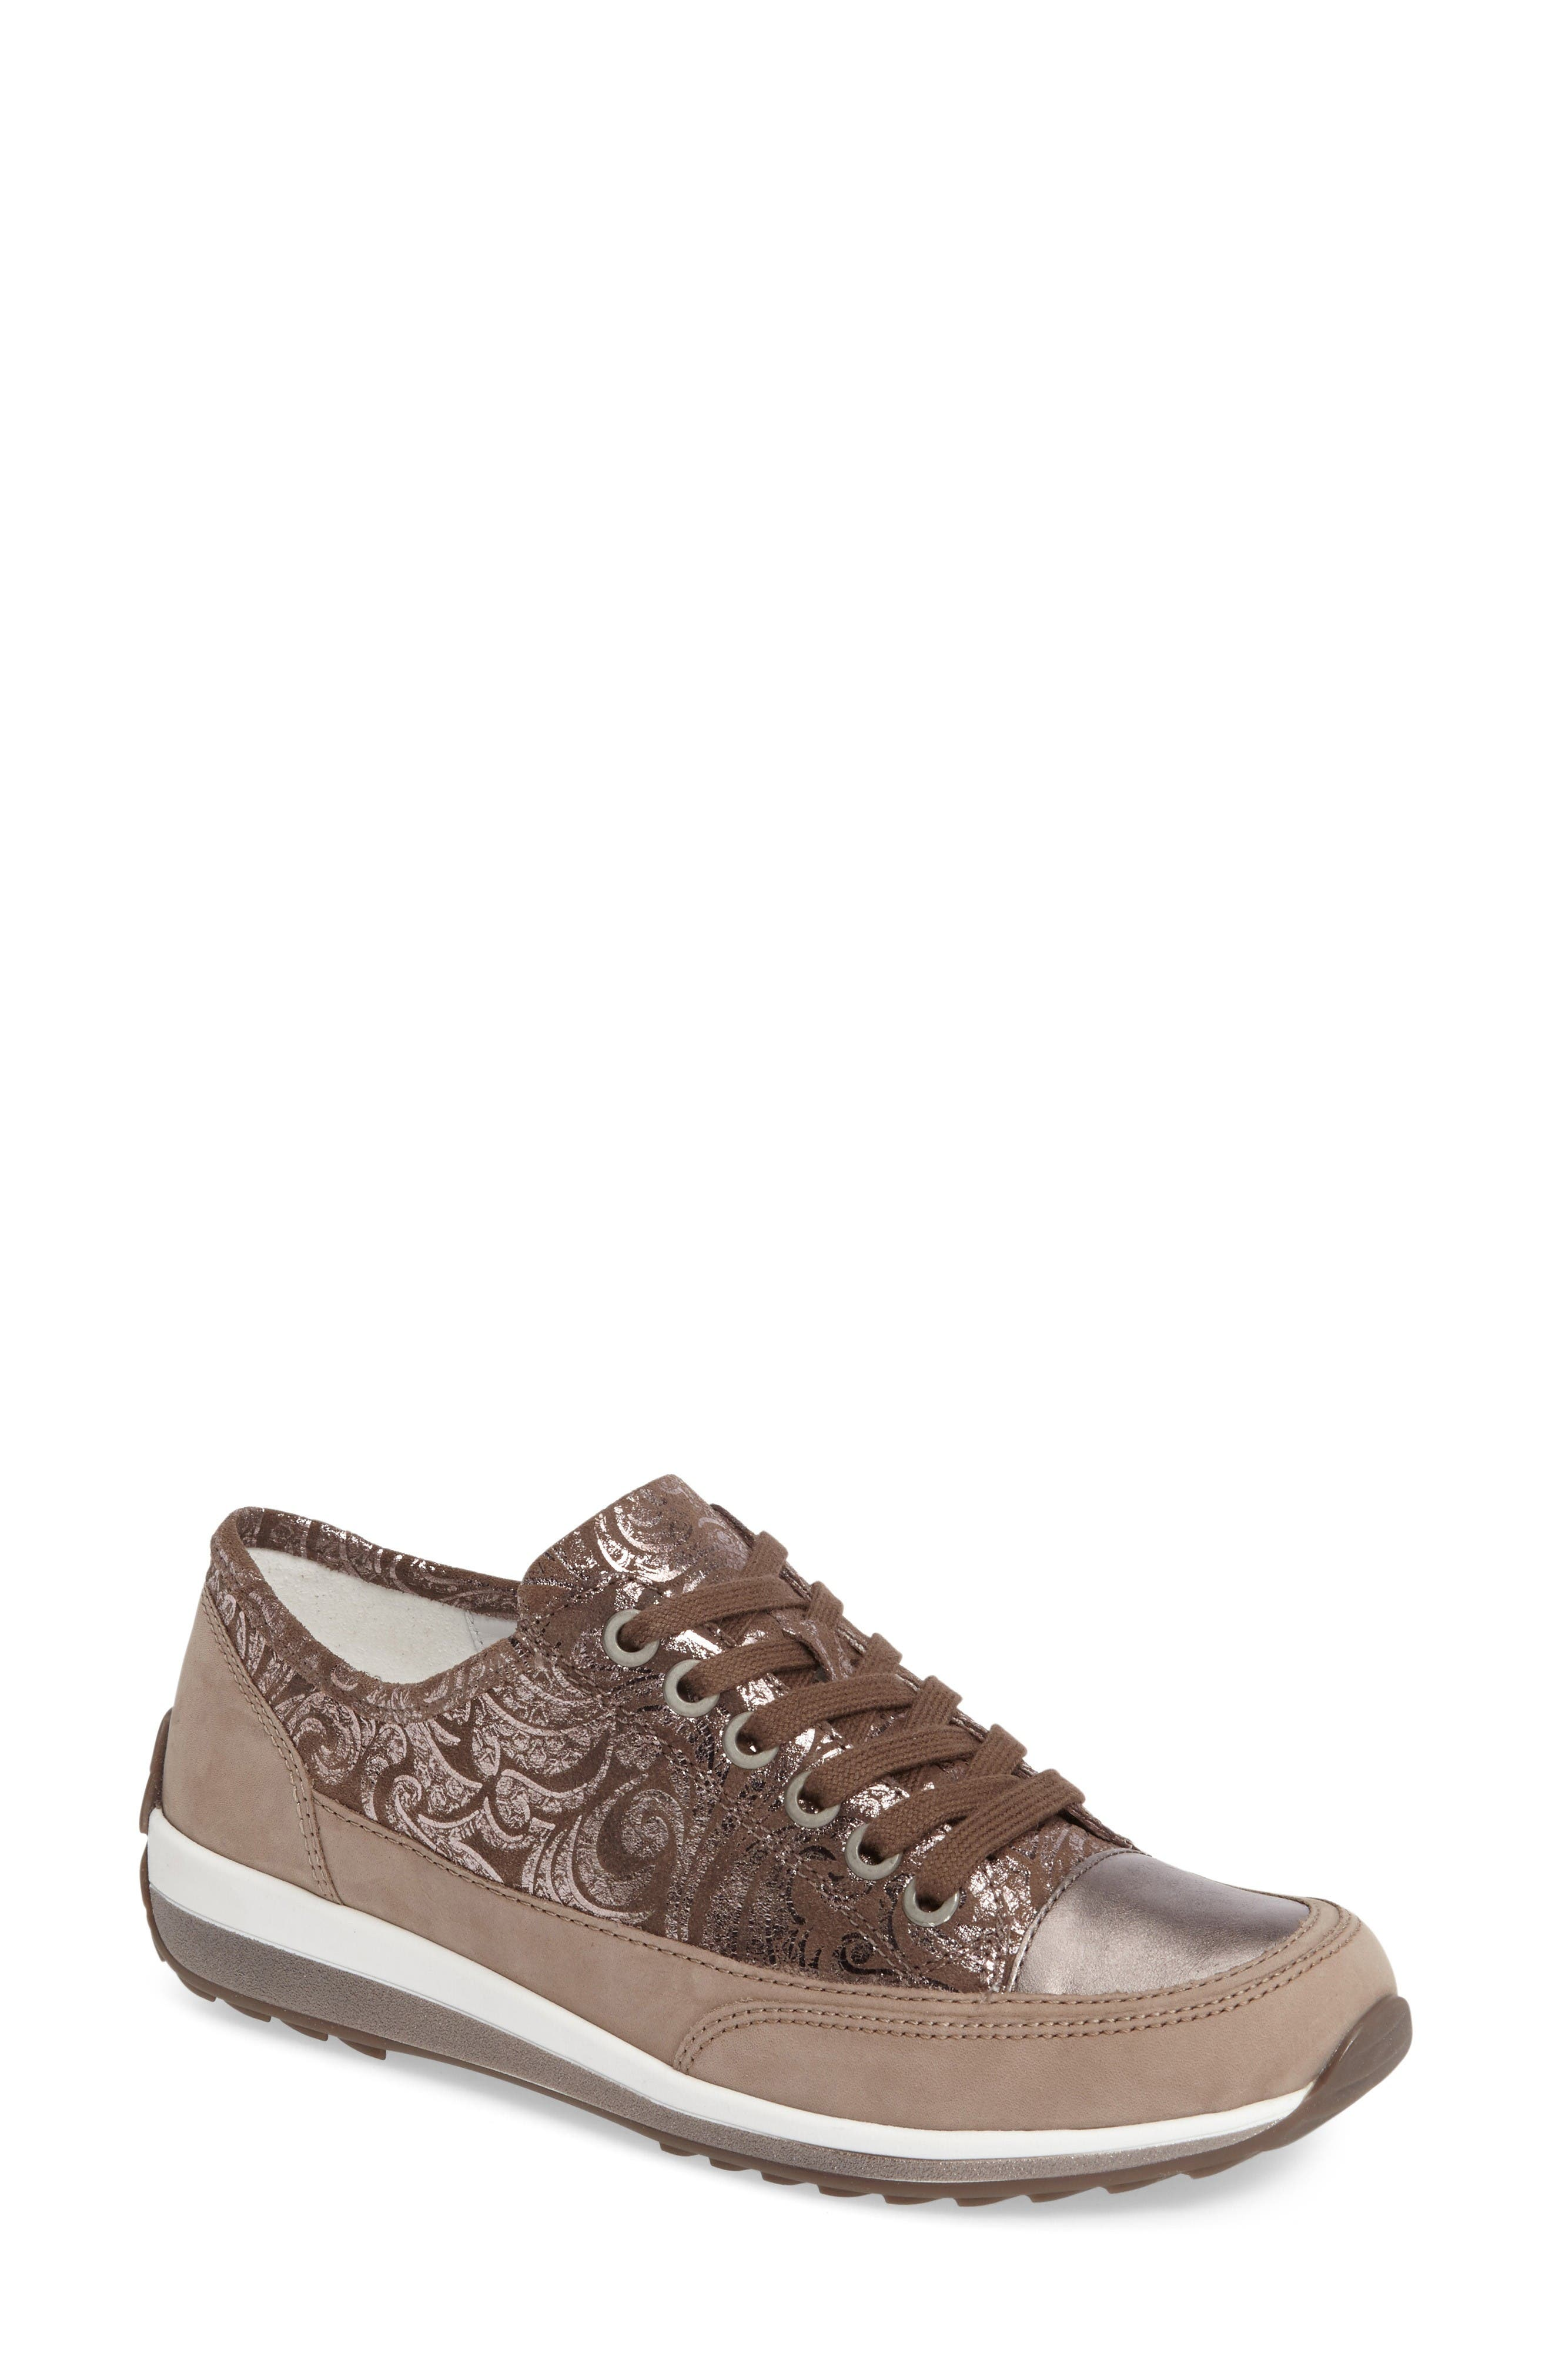 Hermione Sneaker,                         Main,                         color, Taupe Combo Leather